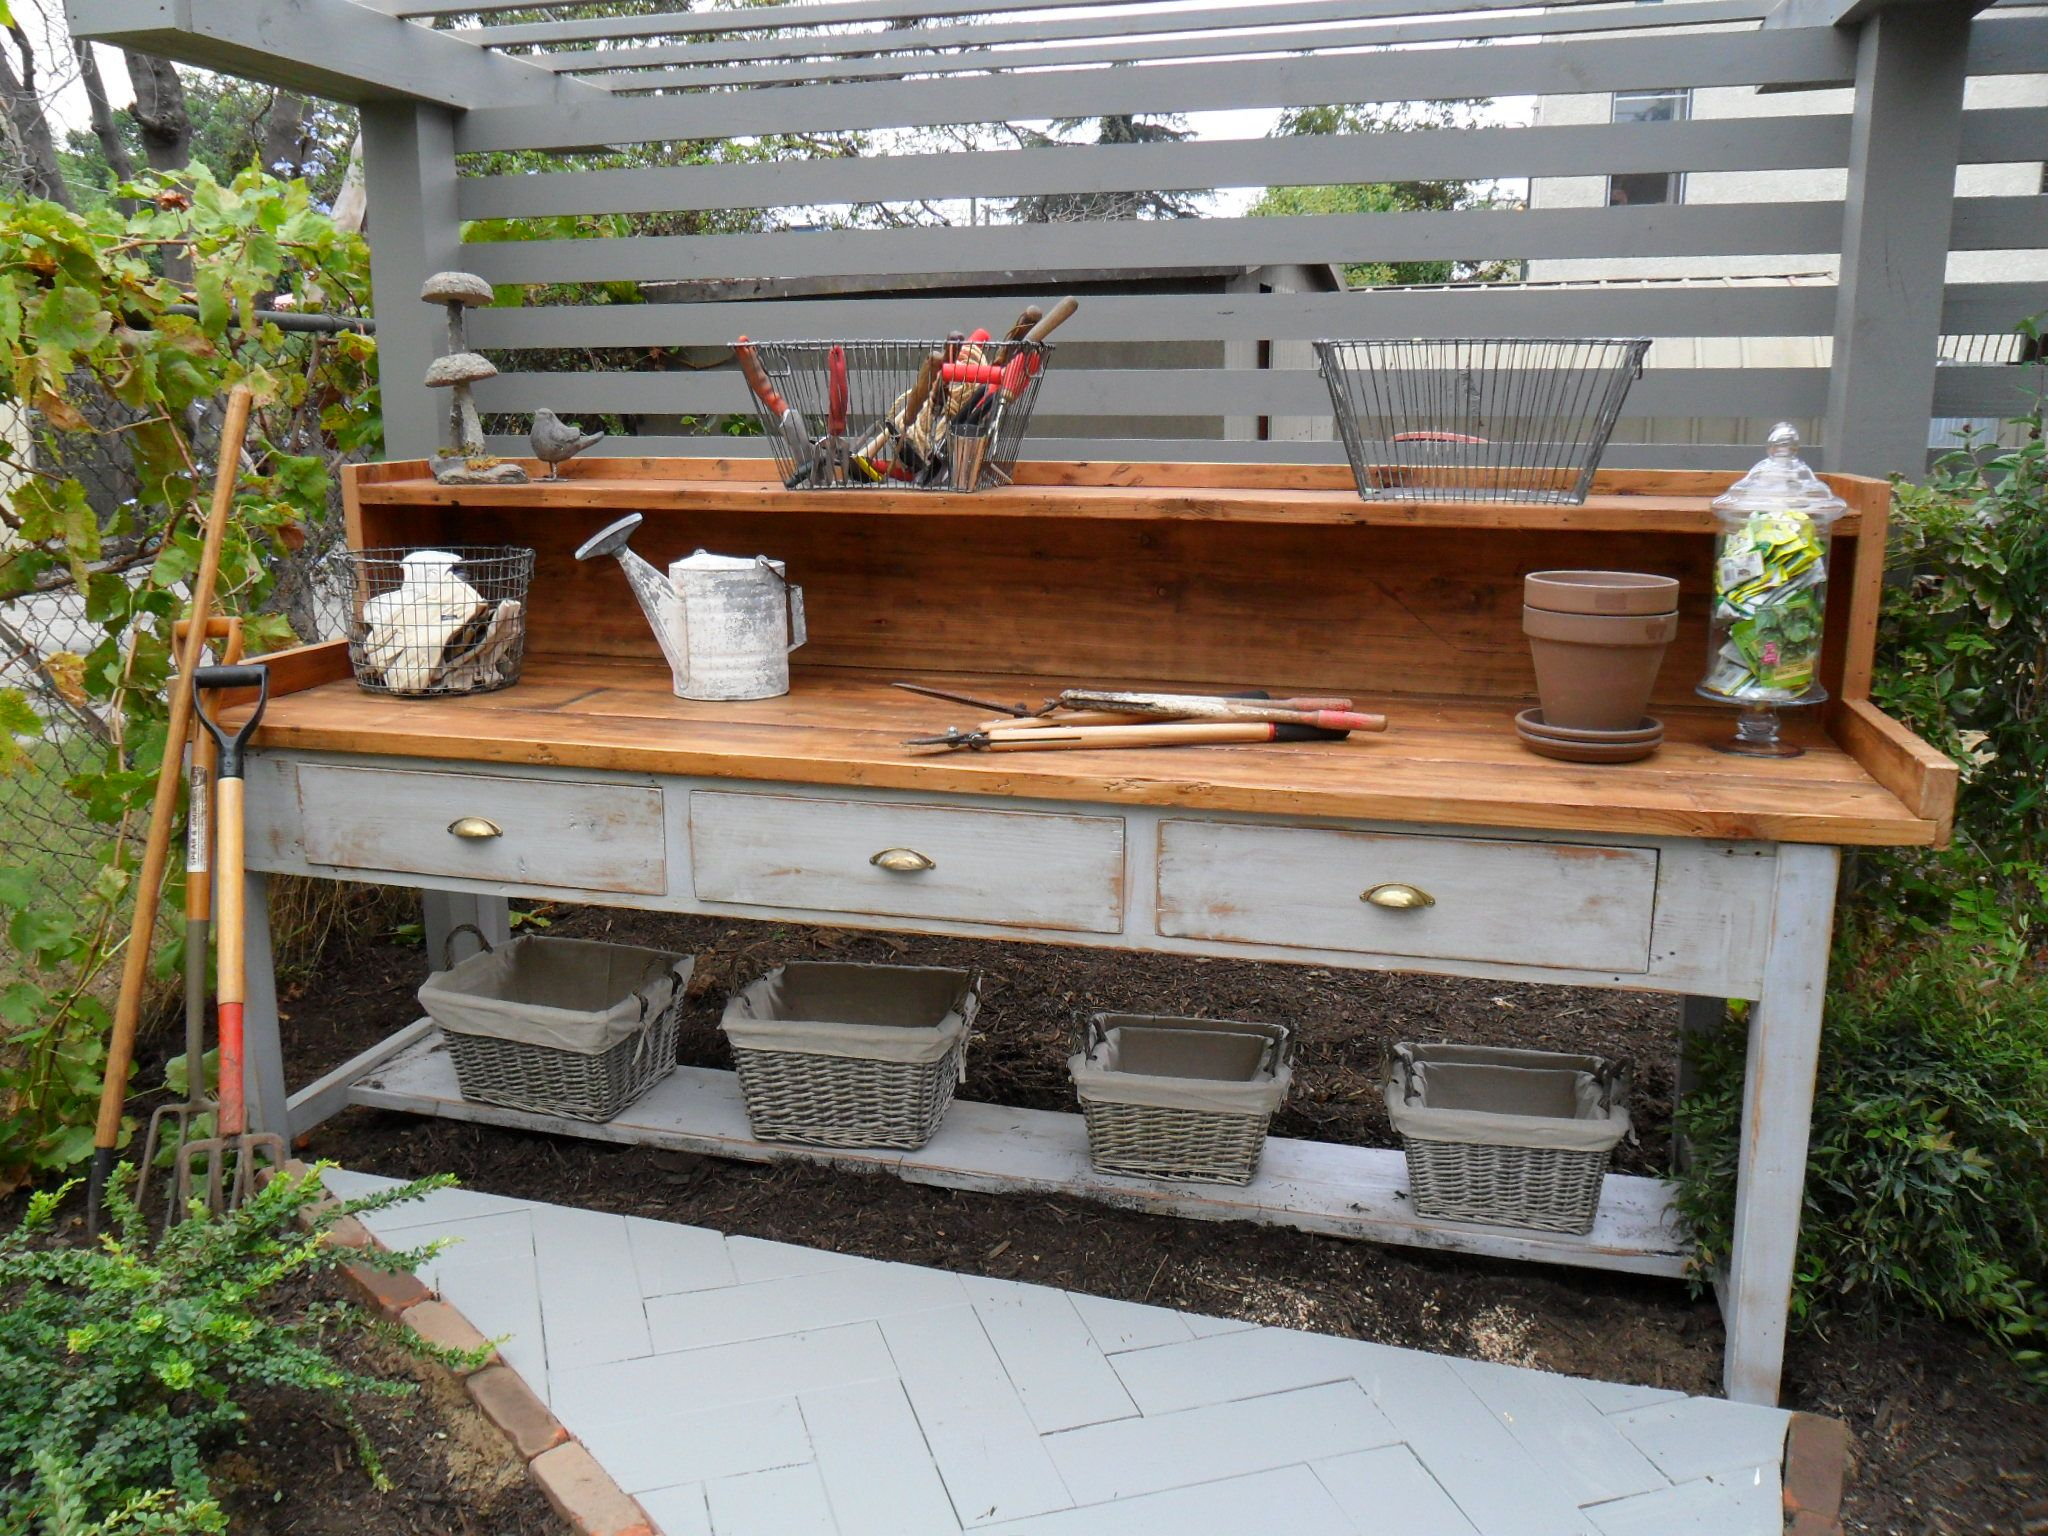 garden workbench - Garden Work Bench